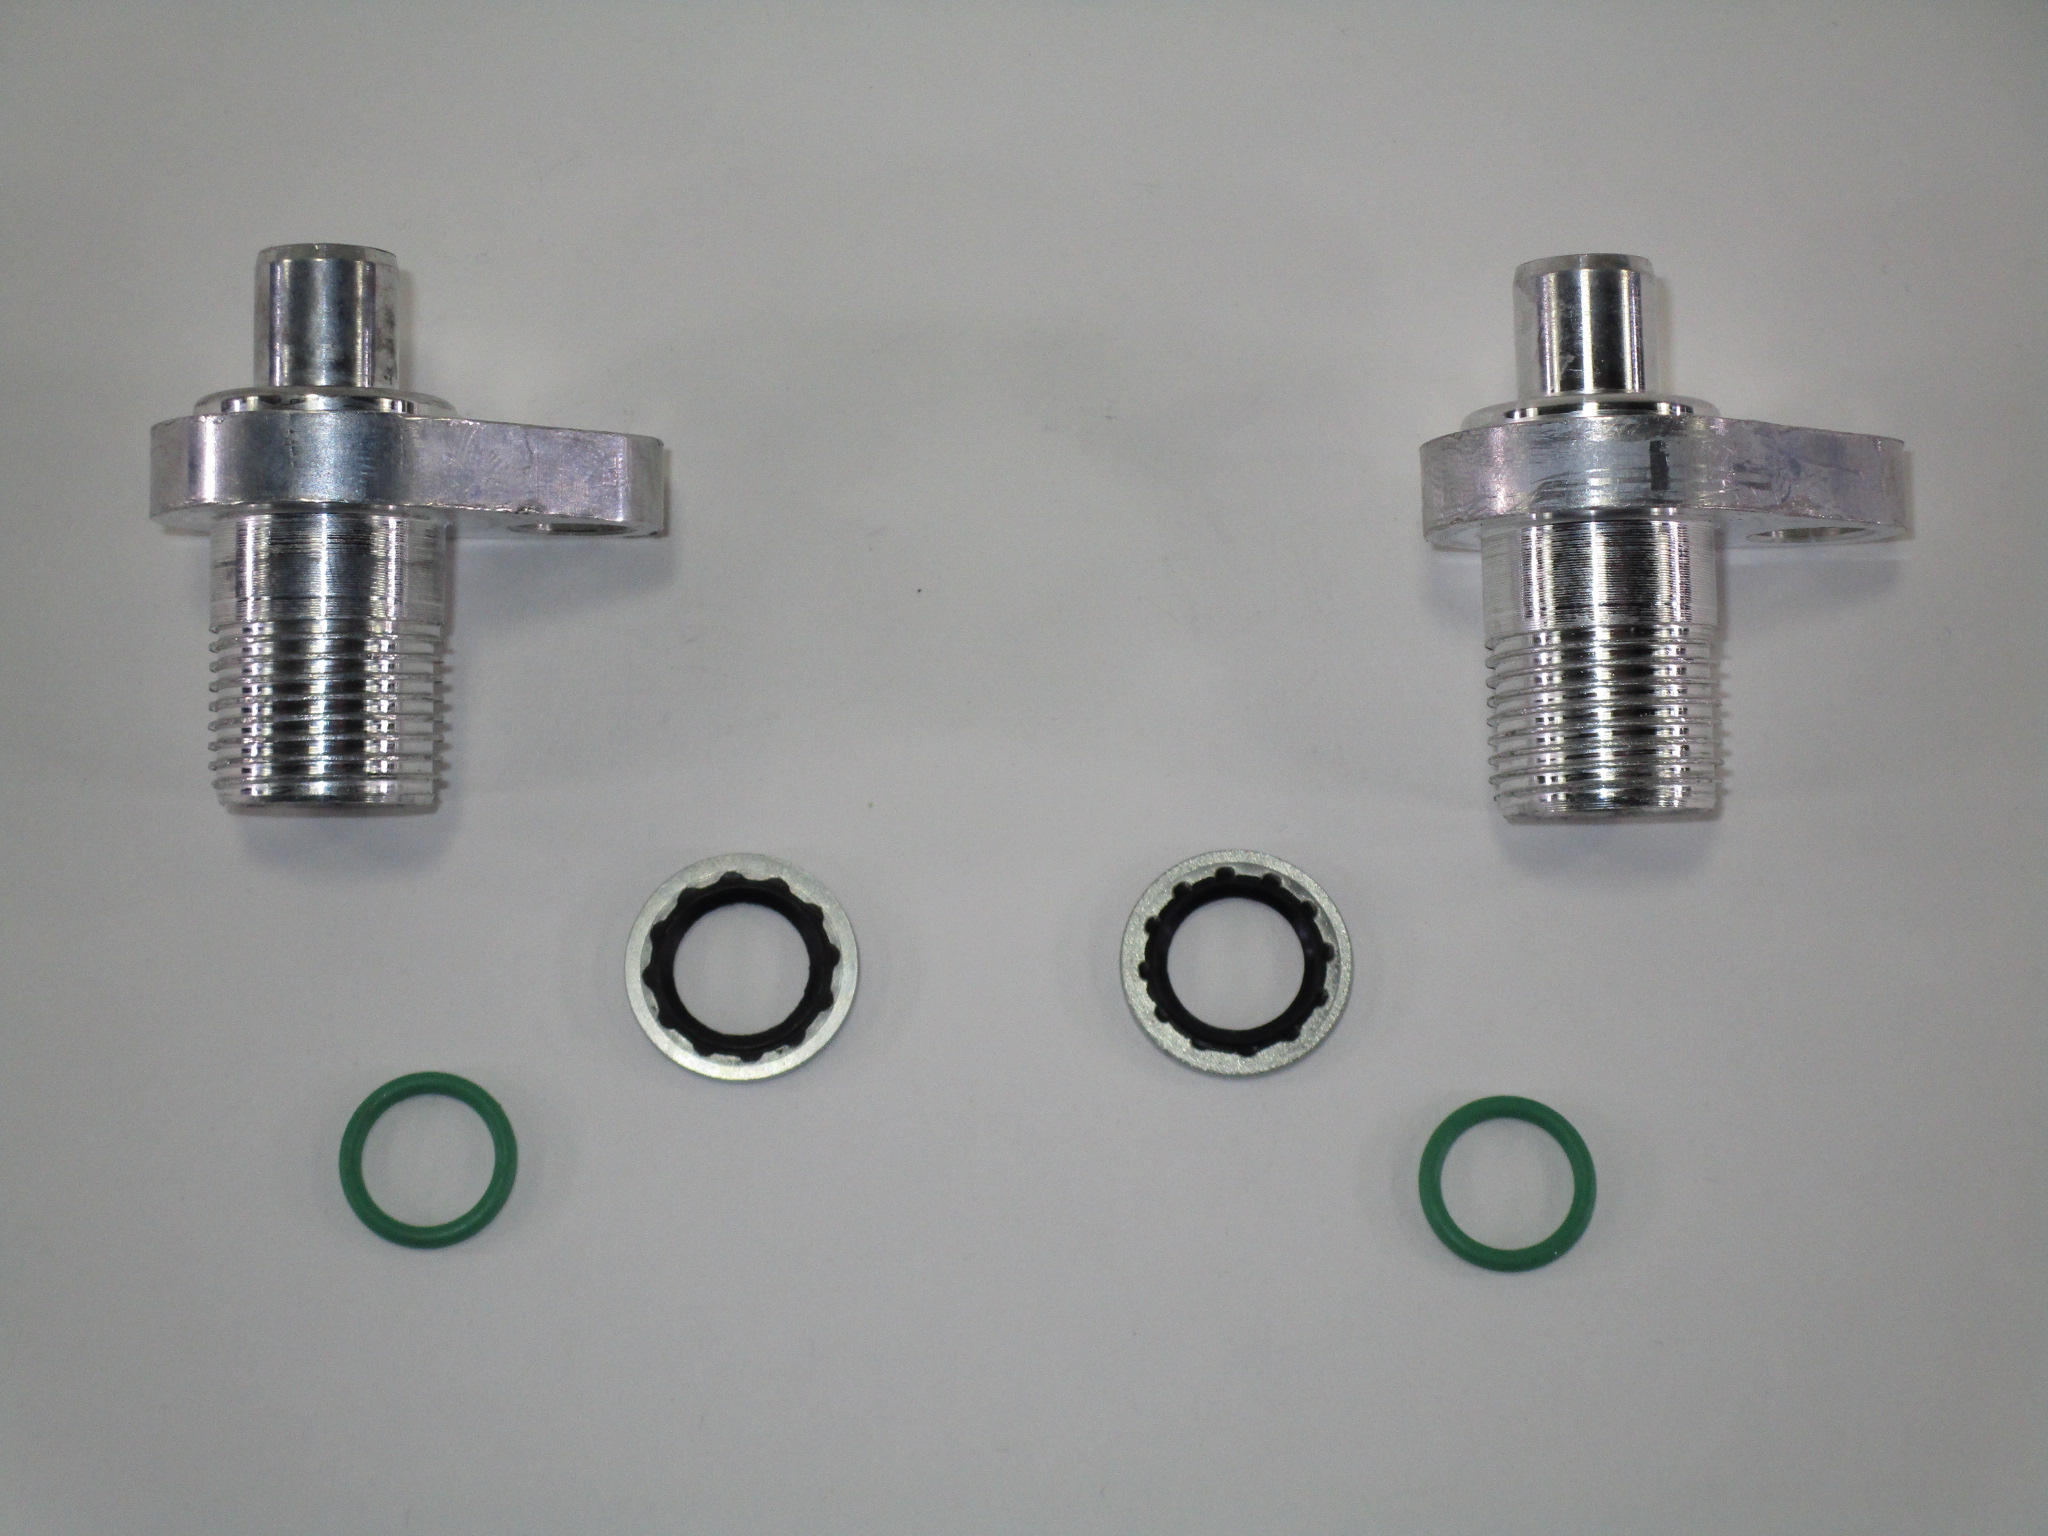 LS Swap AC condenser adapter fittings - 2 #8 fittings